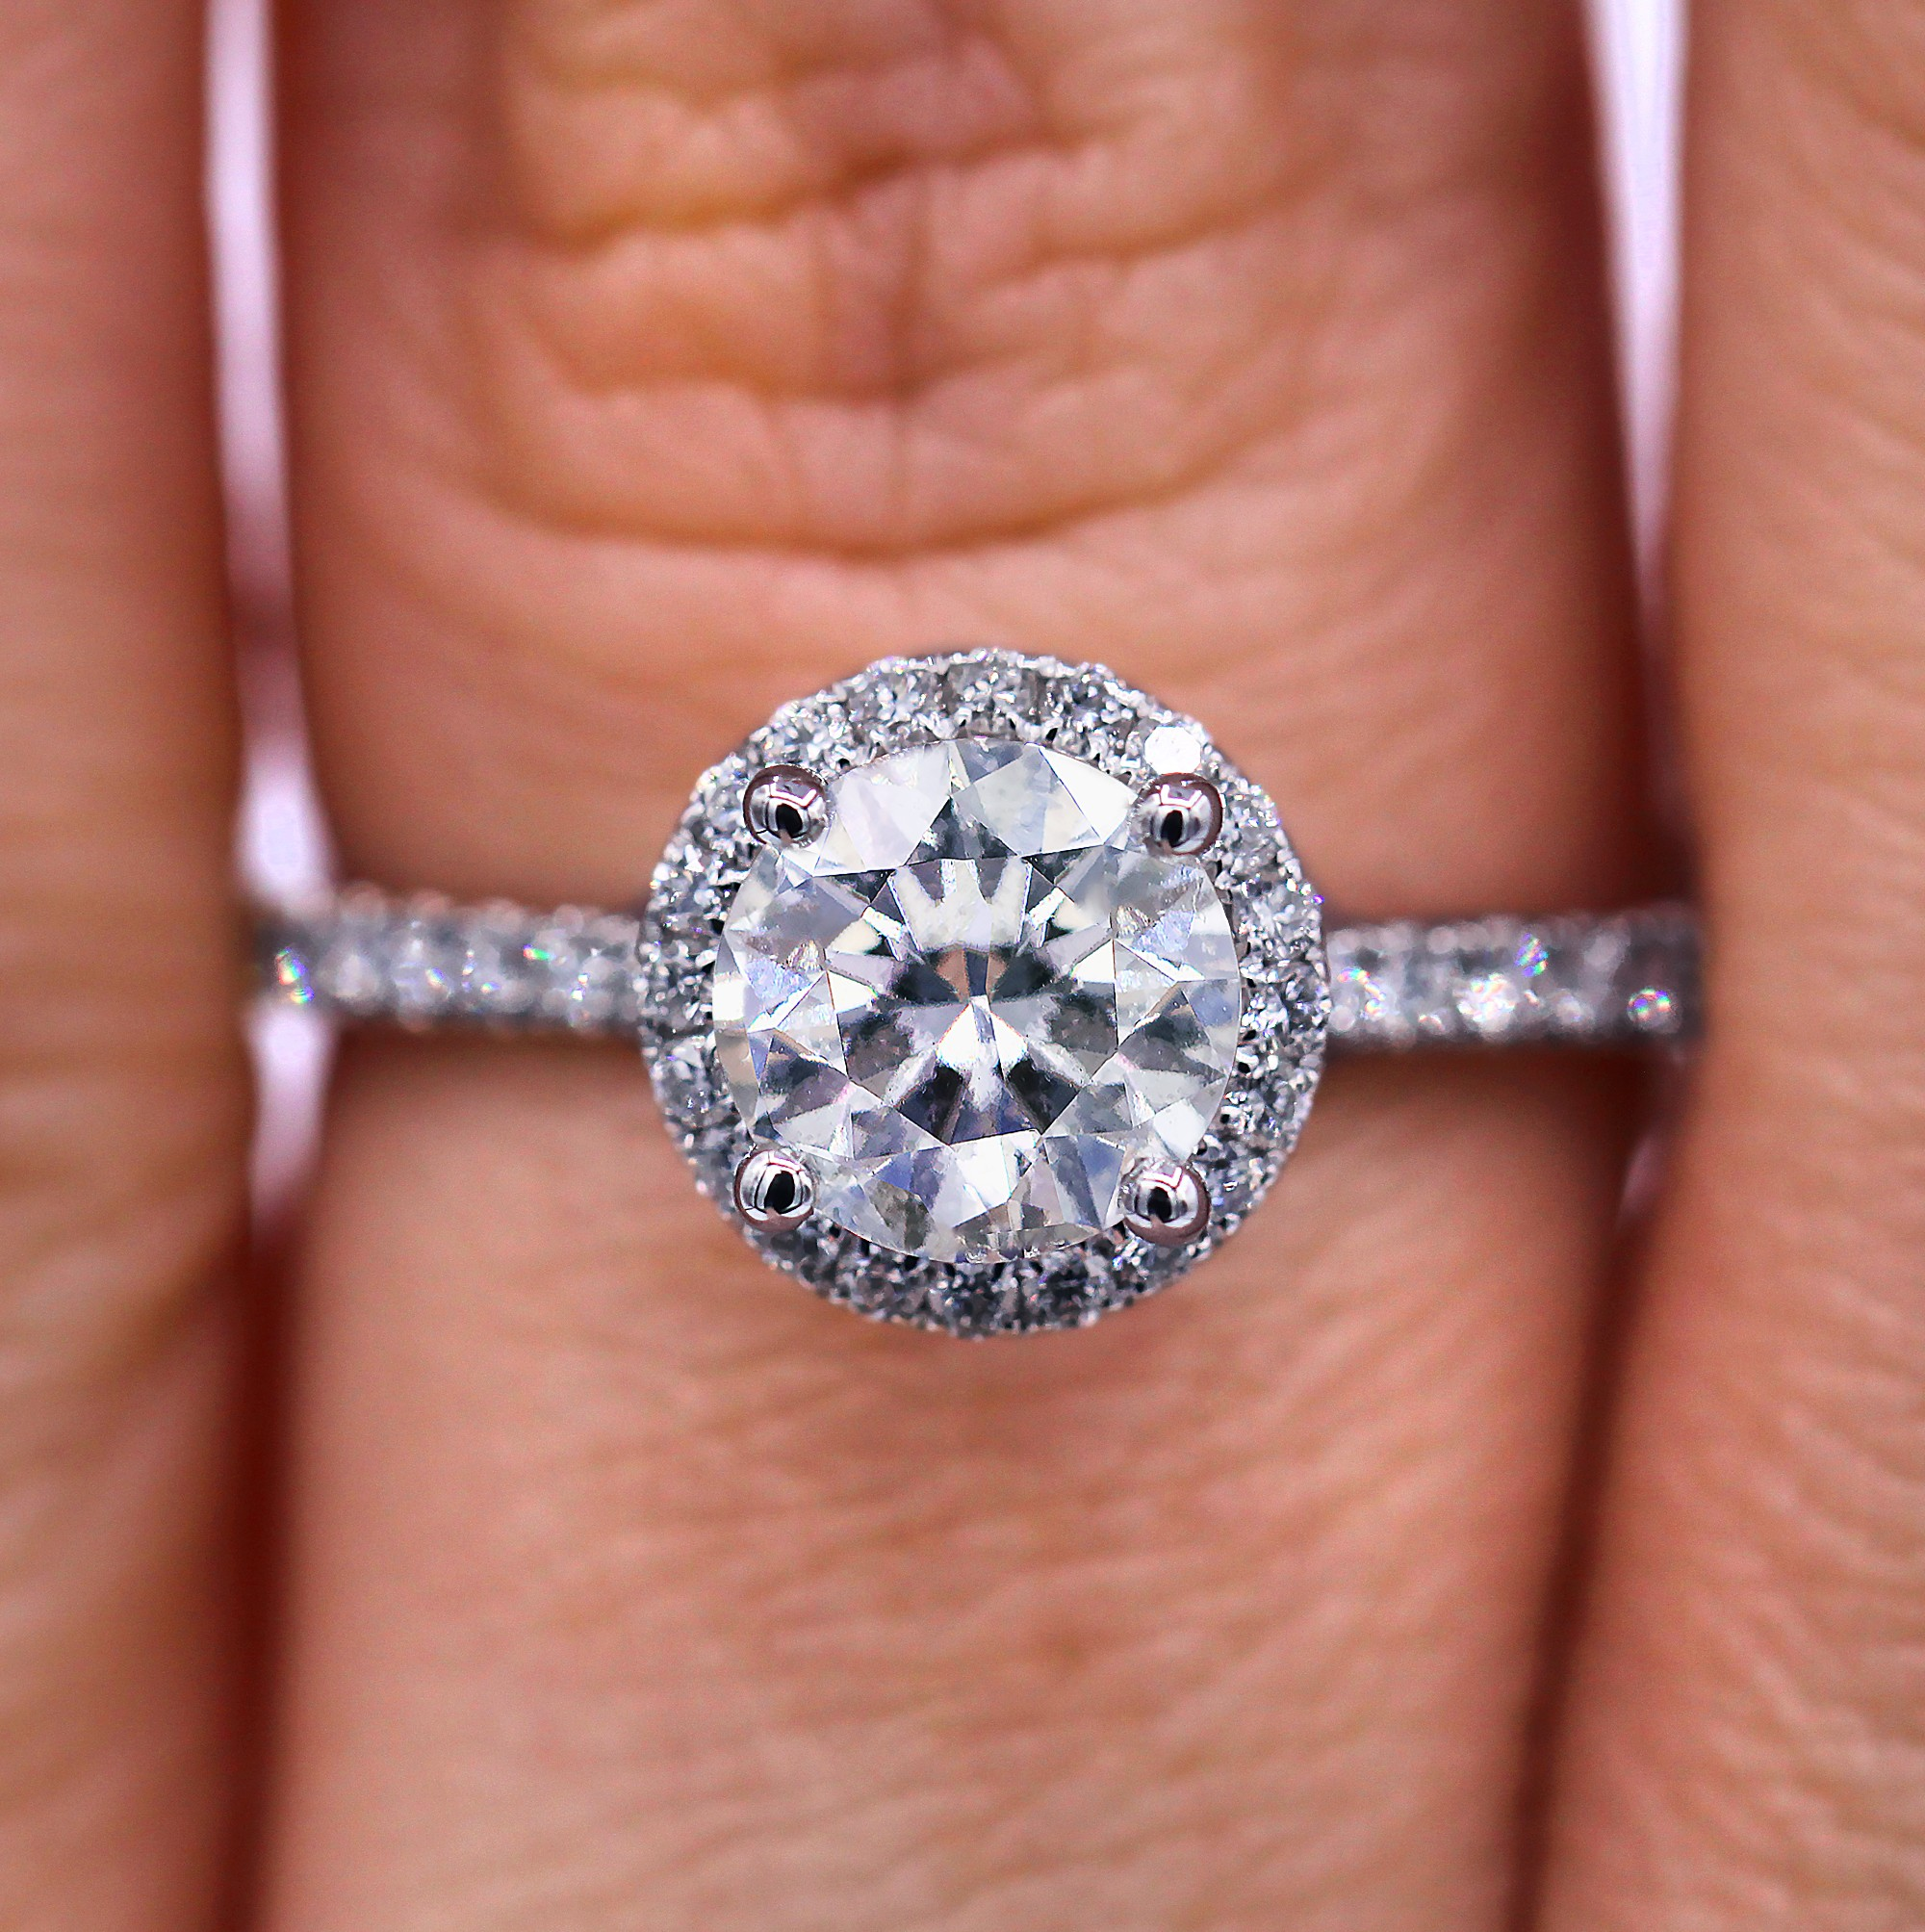 Delicate Halo 1.29 cts diamond ring